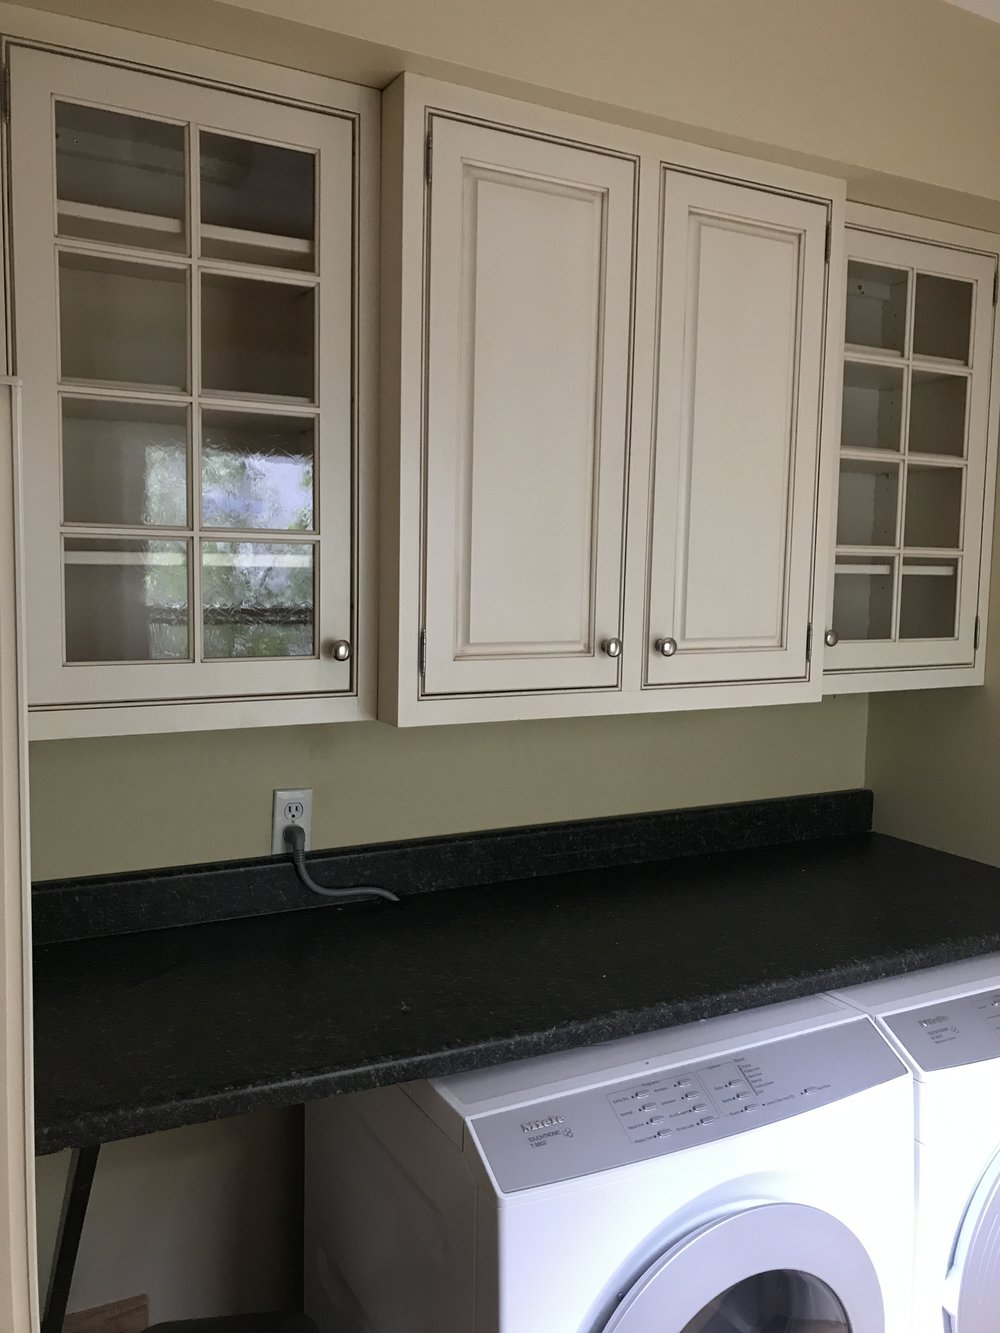 - here over my washer and dryer. They look so much better than the old laminate cabinets we removed! Once the big renovation is done, I'll focus on the laundry room and probably paint these a fun color.*Note that this area is going to be my make shift kitchen during the renovation